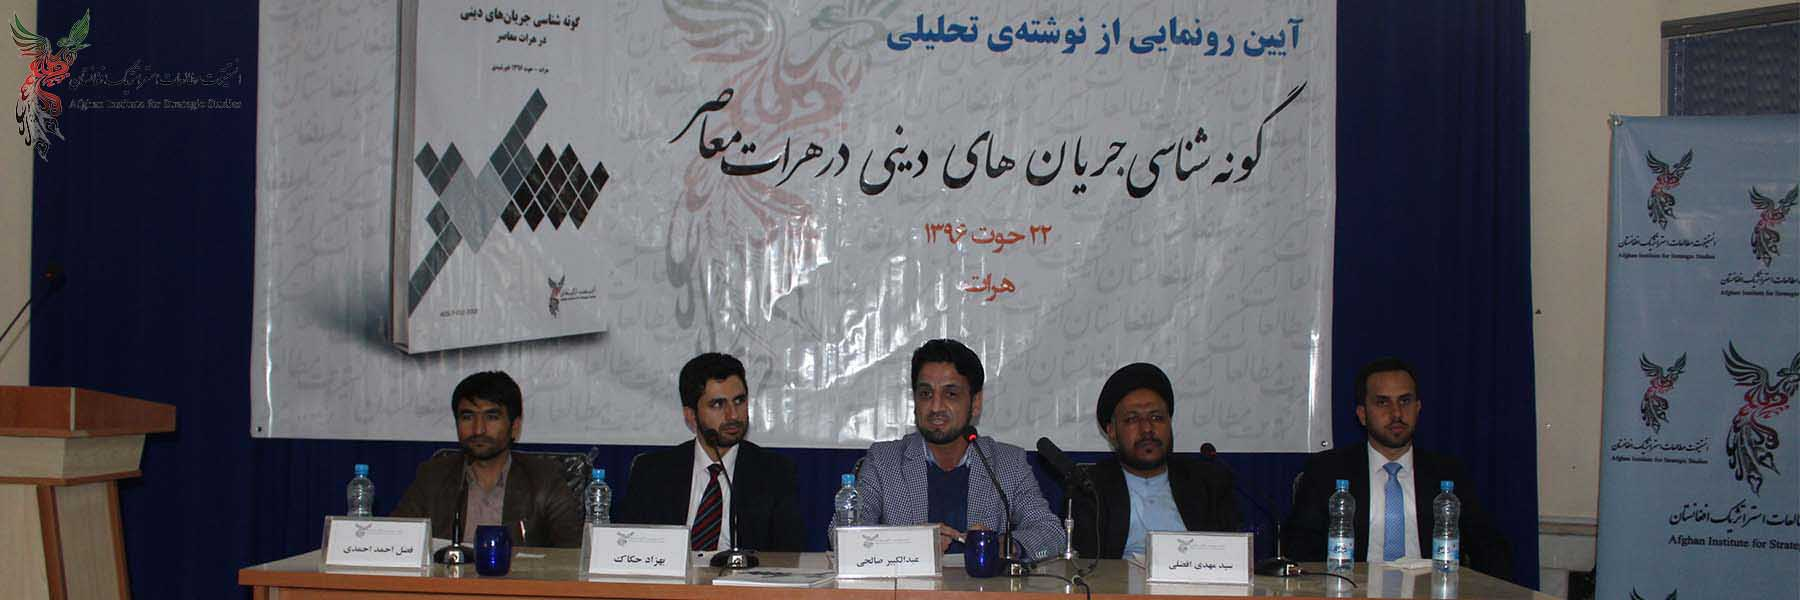 "Launching Ceremony of AISS's Research Paper on ""Typology of Religious trends in Contemporary Herat"""